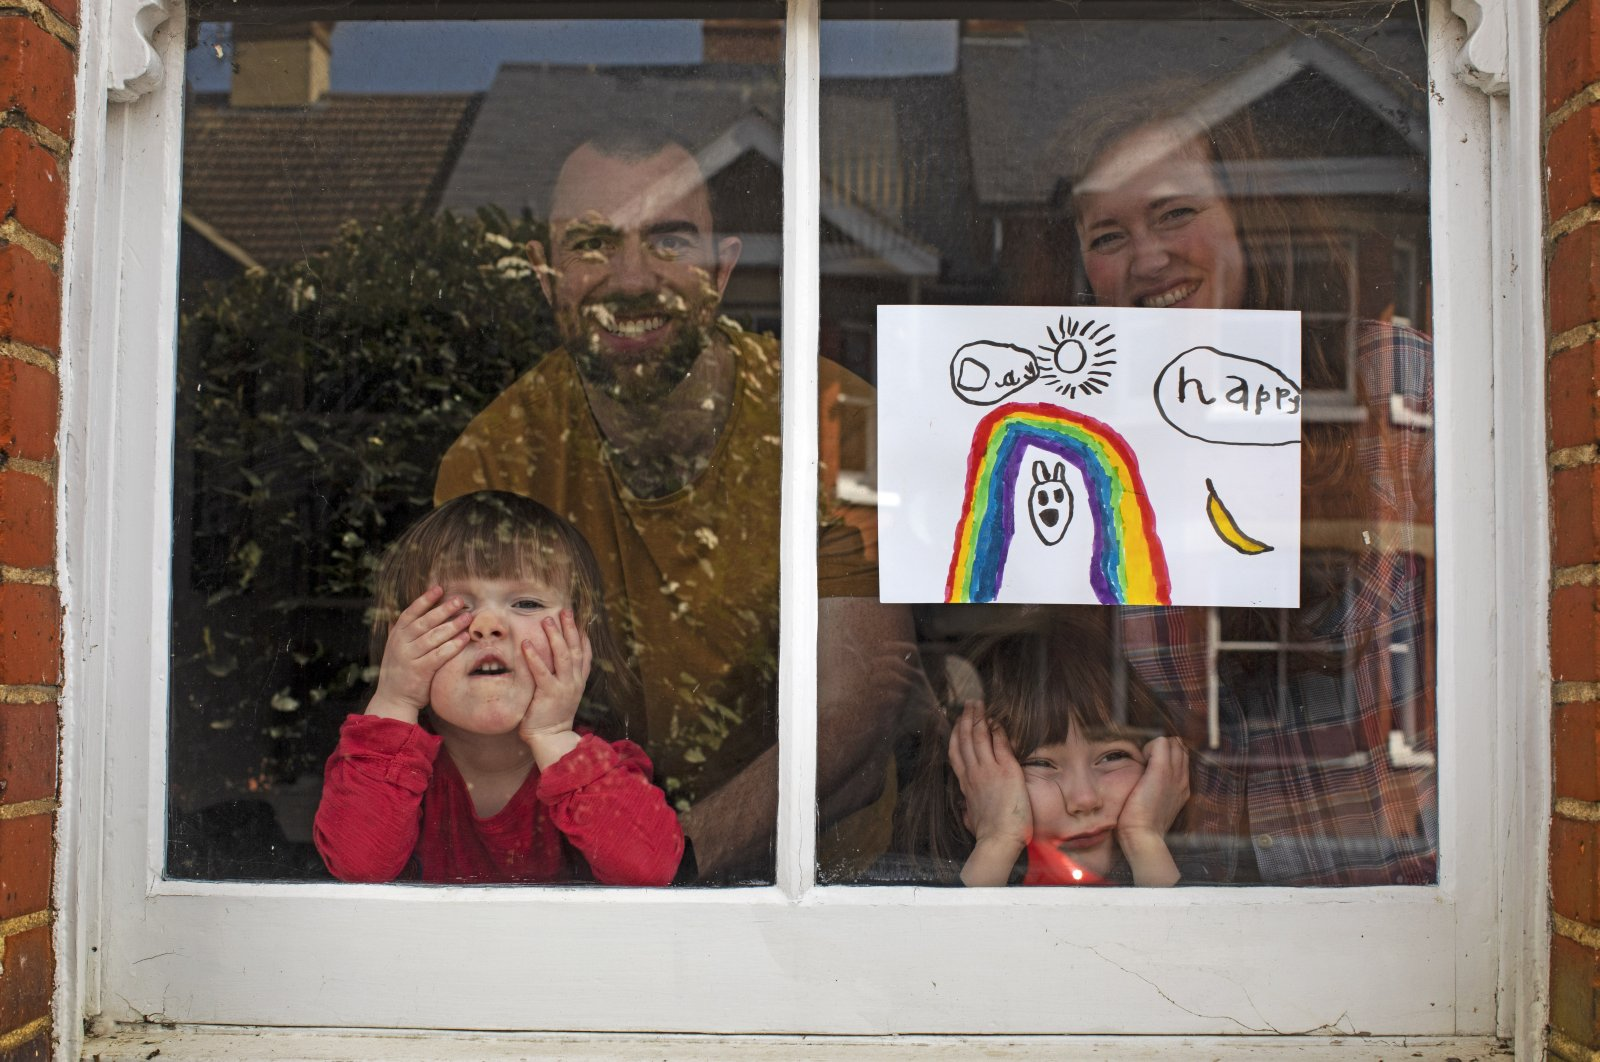 Amelie and her sister Camille look out from their front window as the coronavirus lockdown enters its third week, along with their parents, Victoria and Damian Kerr, in Berkhamsted, England, April 4, 2020. (AP Photo)